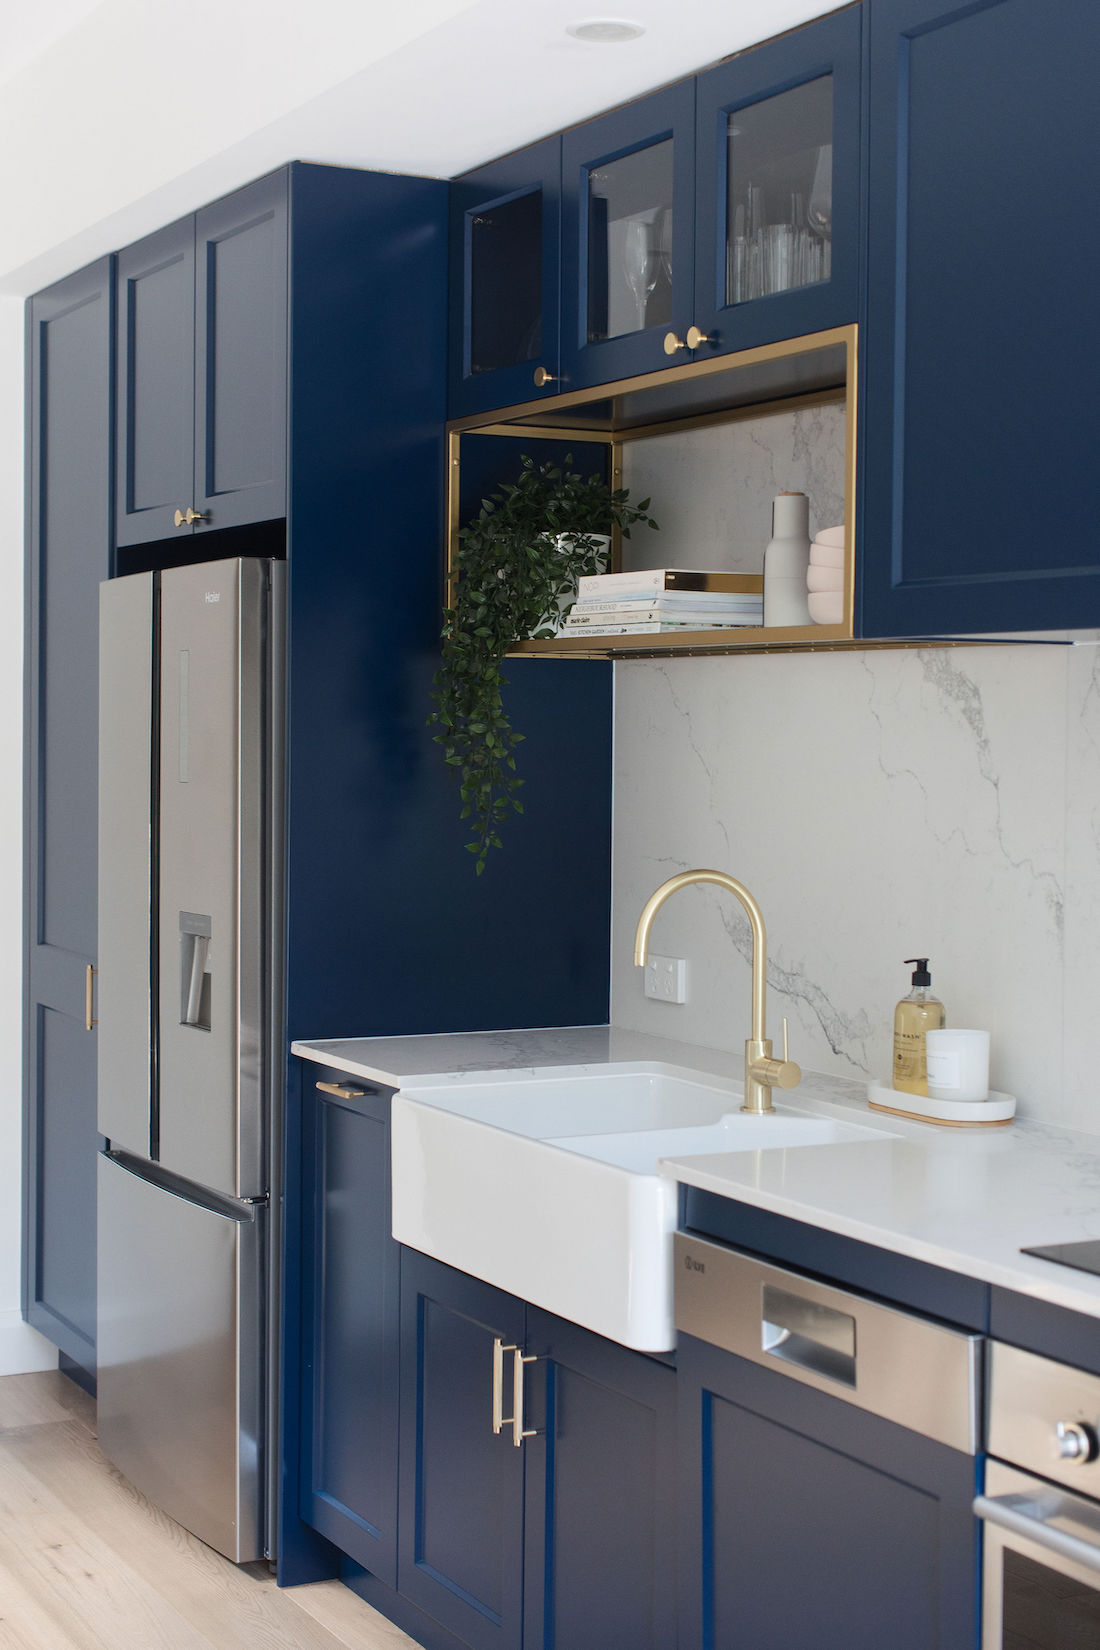 Blue shaker style kitchen Gold tap